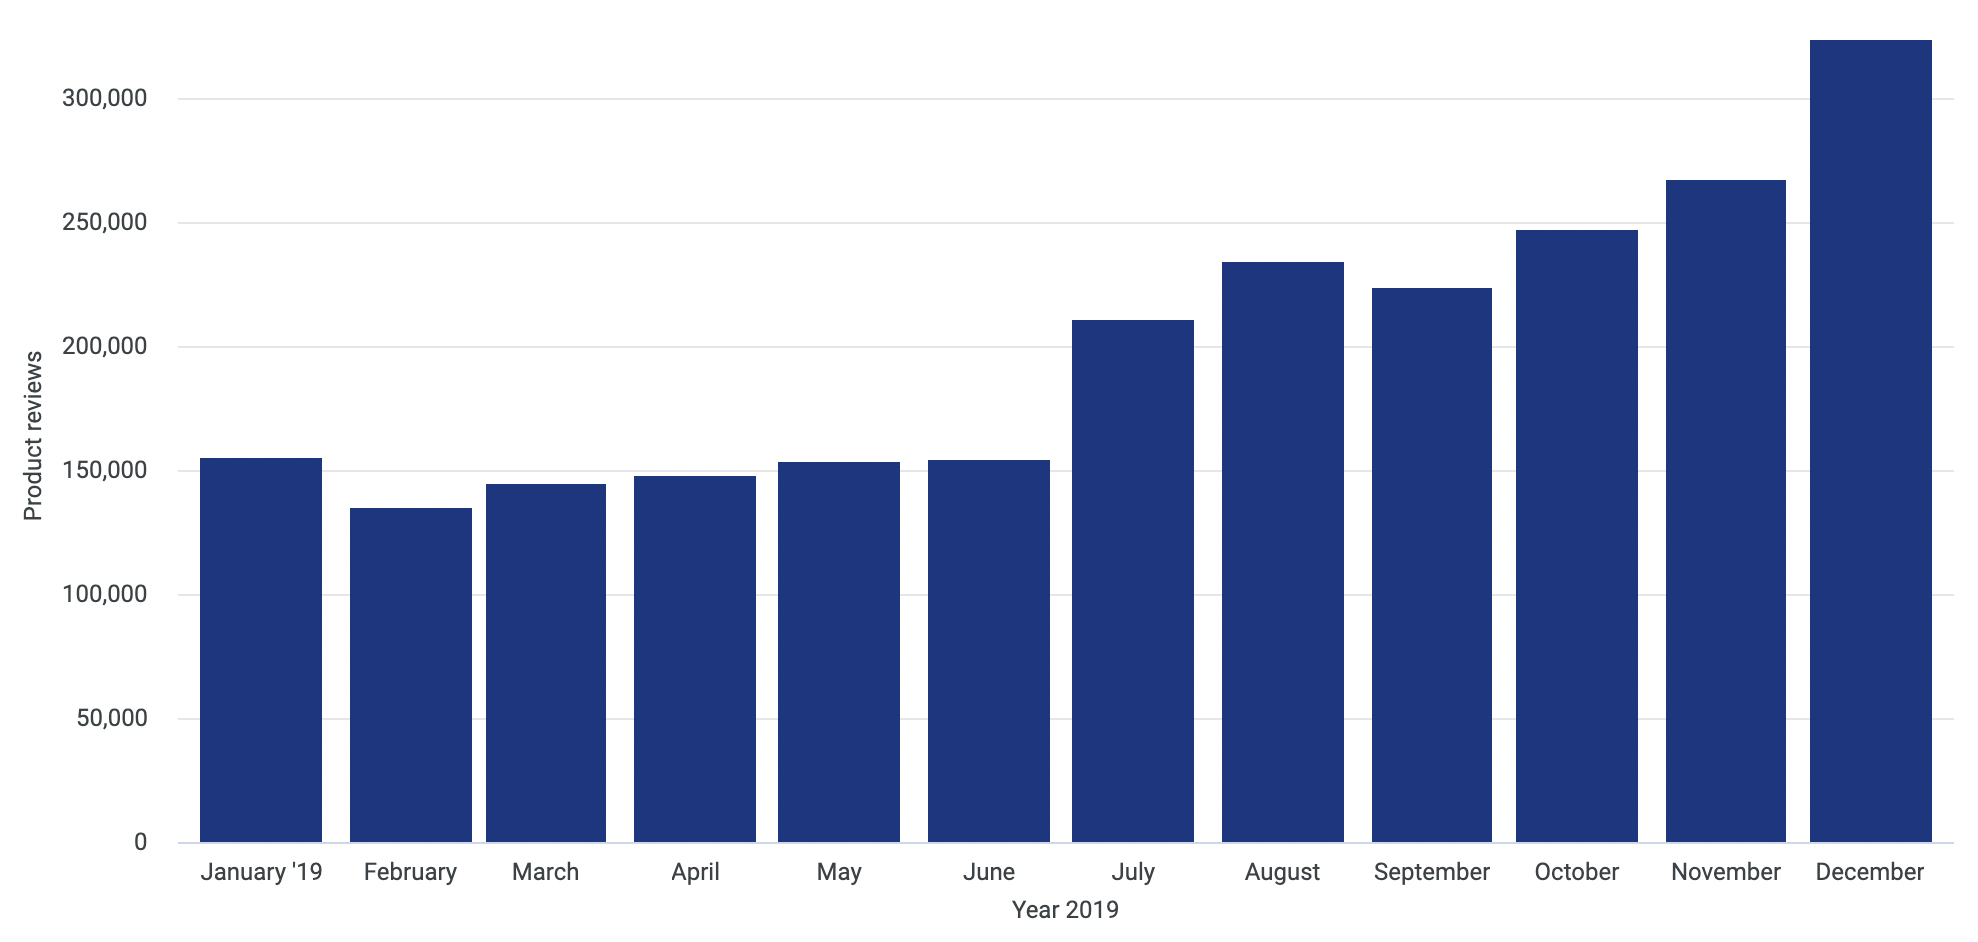 Product reviews left on Trustpilot.com between January 1st 2019 and December 31st 2019. Here, we can observe a significant increase in service reviews from July onwards.